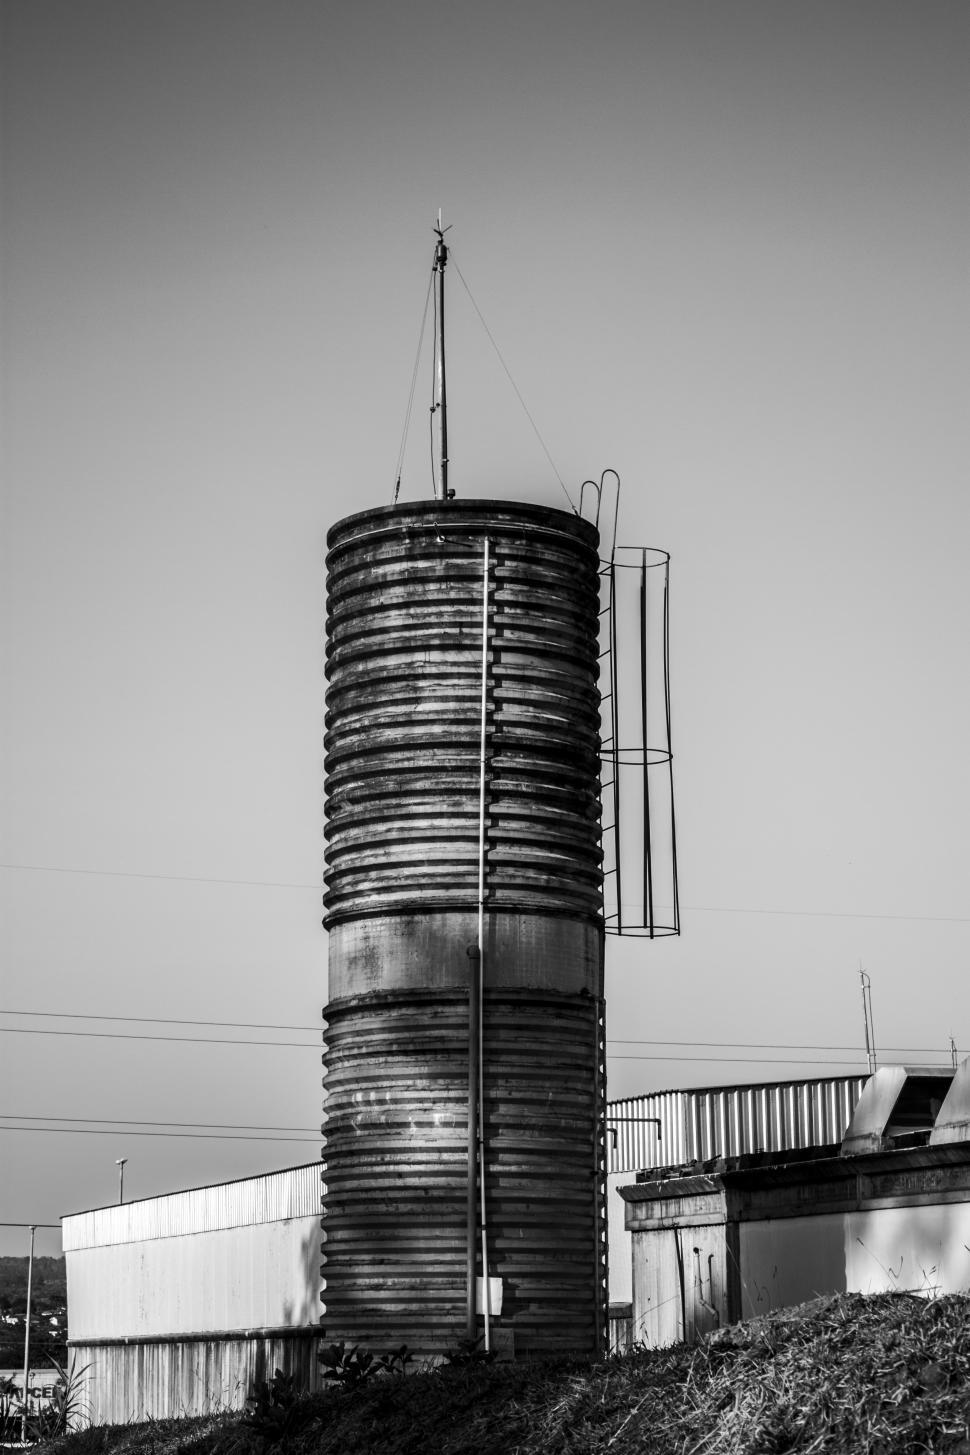 Download Free Stock HD Photo of Old Concrete Water Tower Online